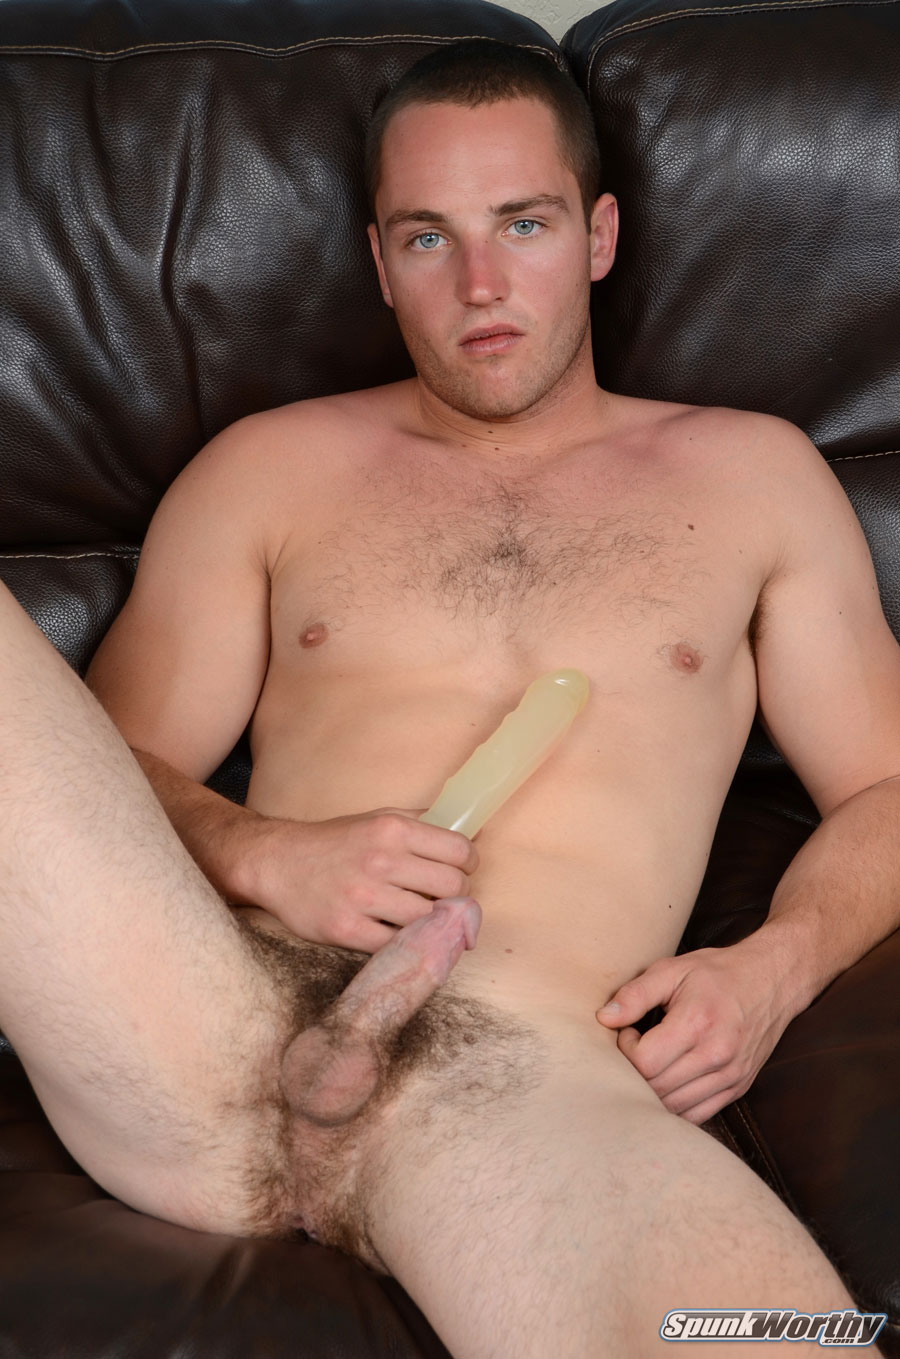 SpunkWorthy Dean Straight Marine Uses A Dildo On Hairy Ass Amateur Gay Porn 03 Ripped Marine Fucks His Striaght Hairy Ass With A Dildo